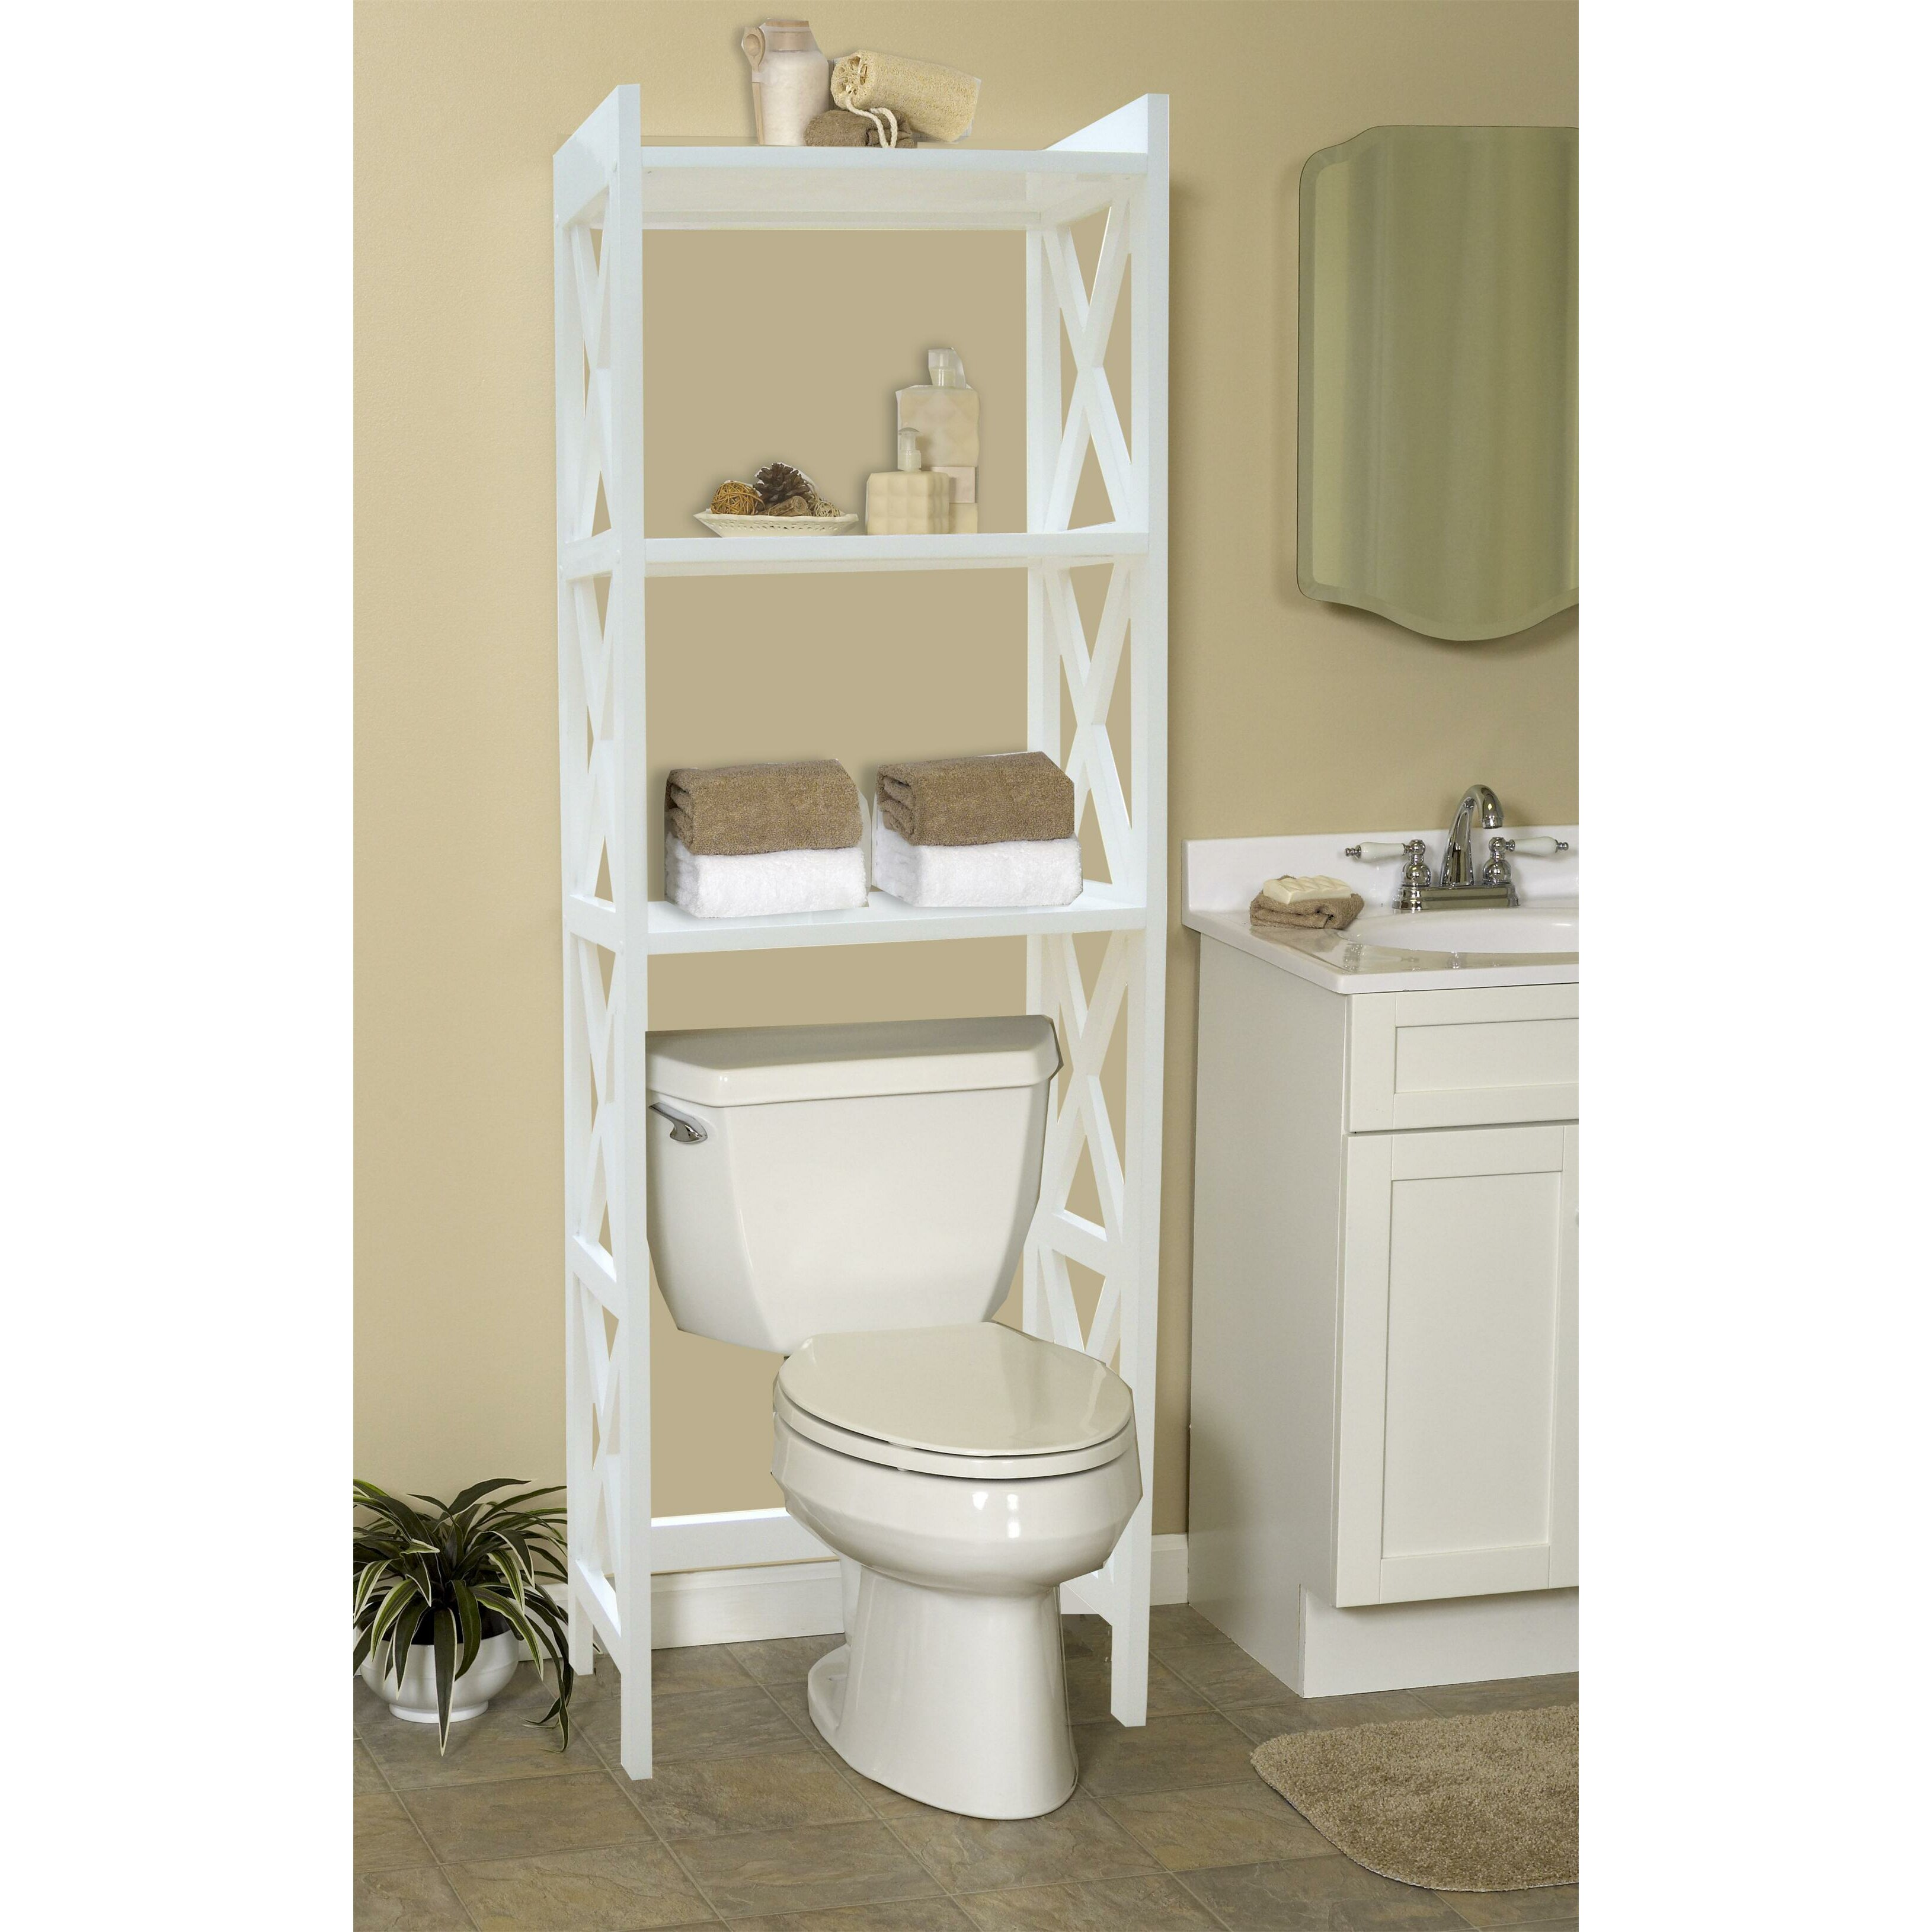 Bathroom space saver 24 5 x 62 free standing over the - Space saver furniture for bathroom ...